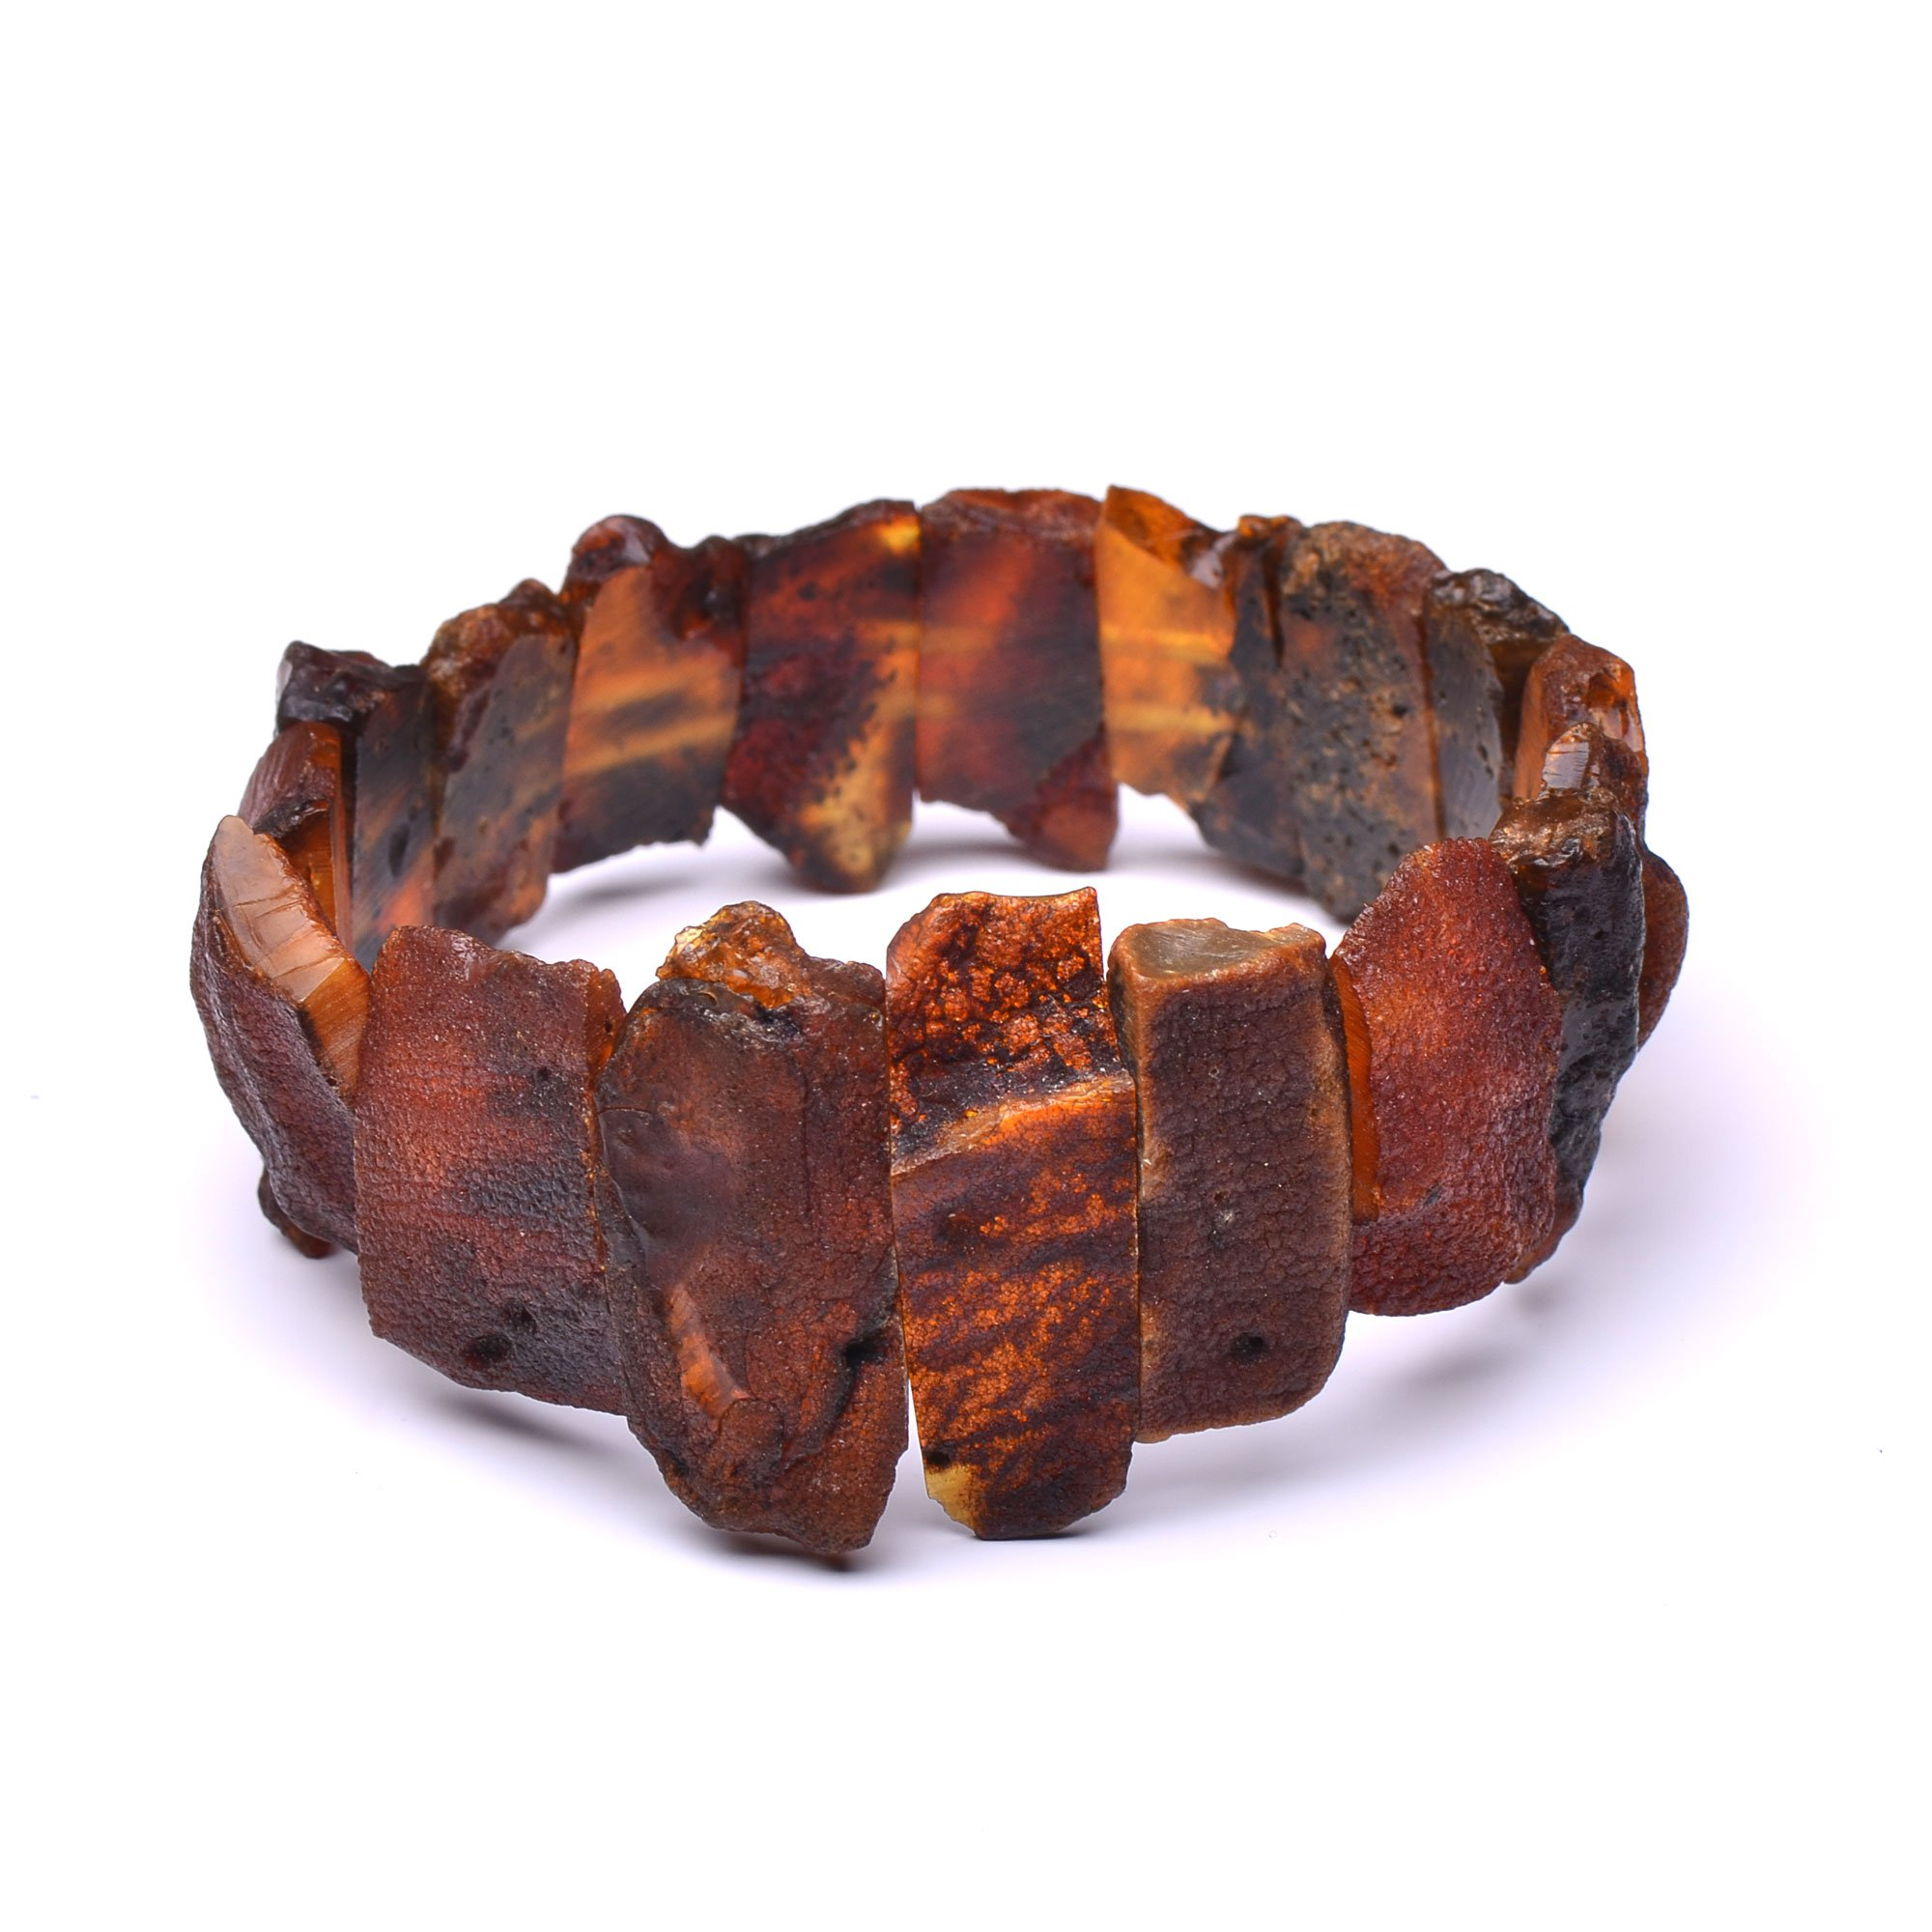 Handmade Unique Amber Bracelet - Exclusive Amber Pieces - Certified 100% Authentic Baltic Amber